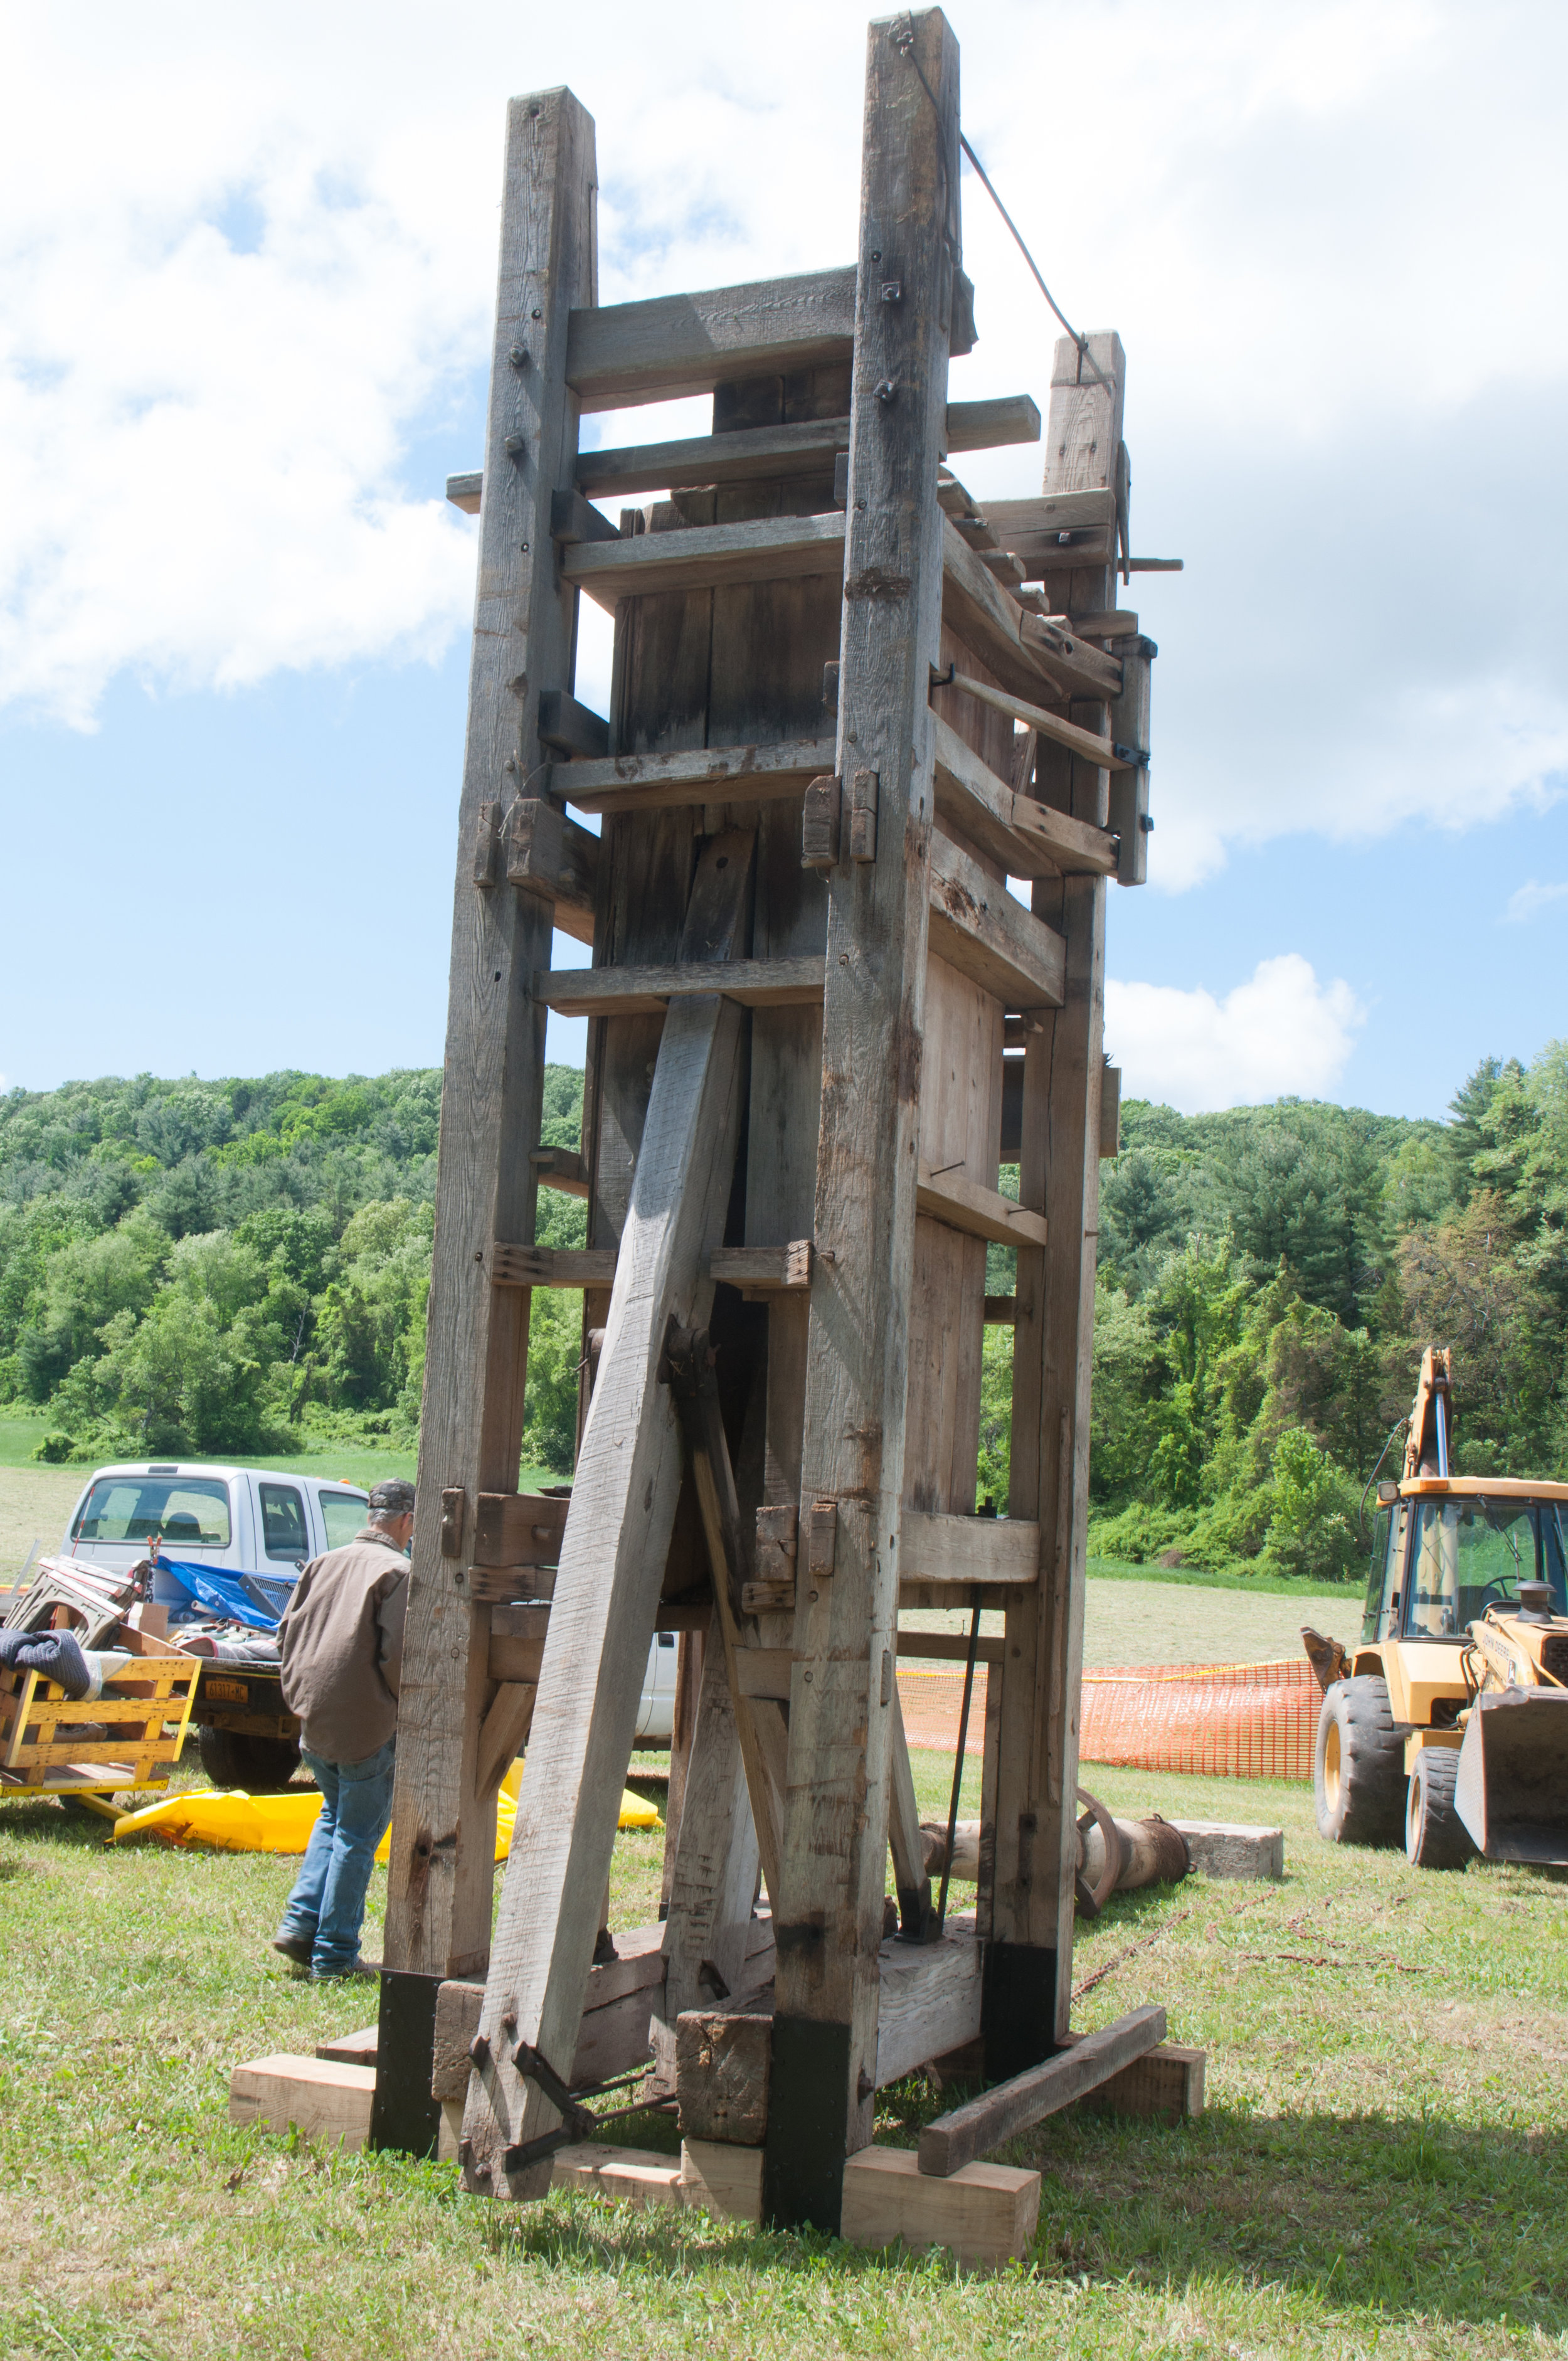 The Greene County Historical Society's Hay Press, a vital farm implement and economic tool of the 19th century Hudson Valley.